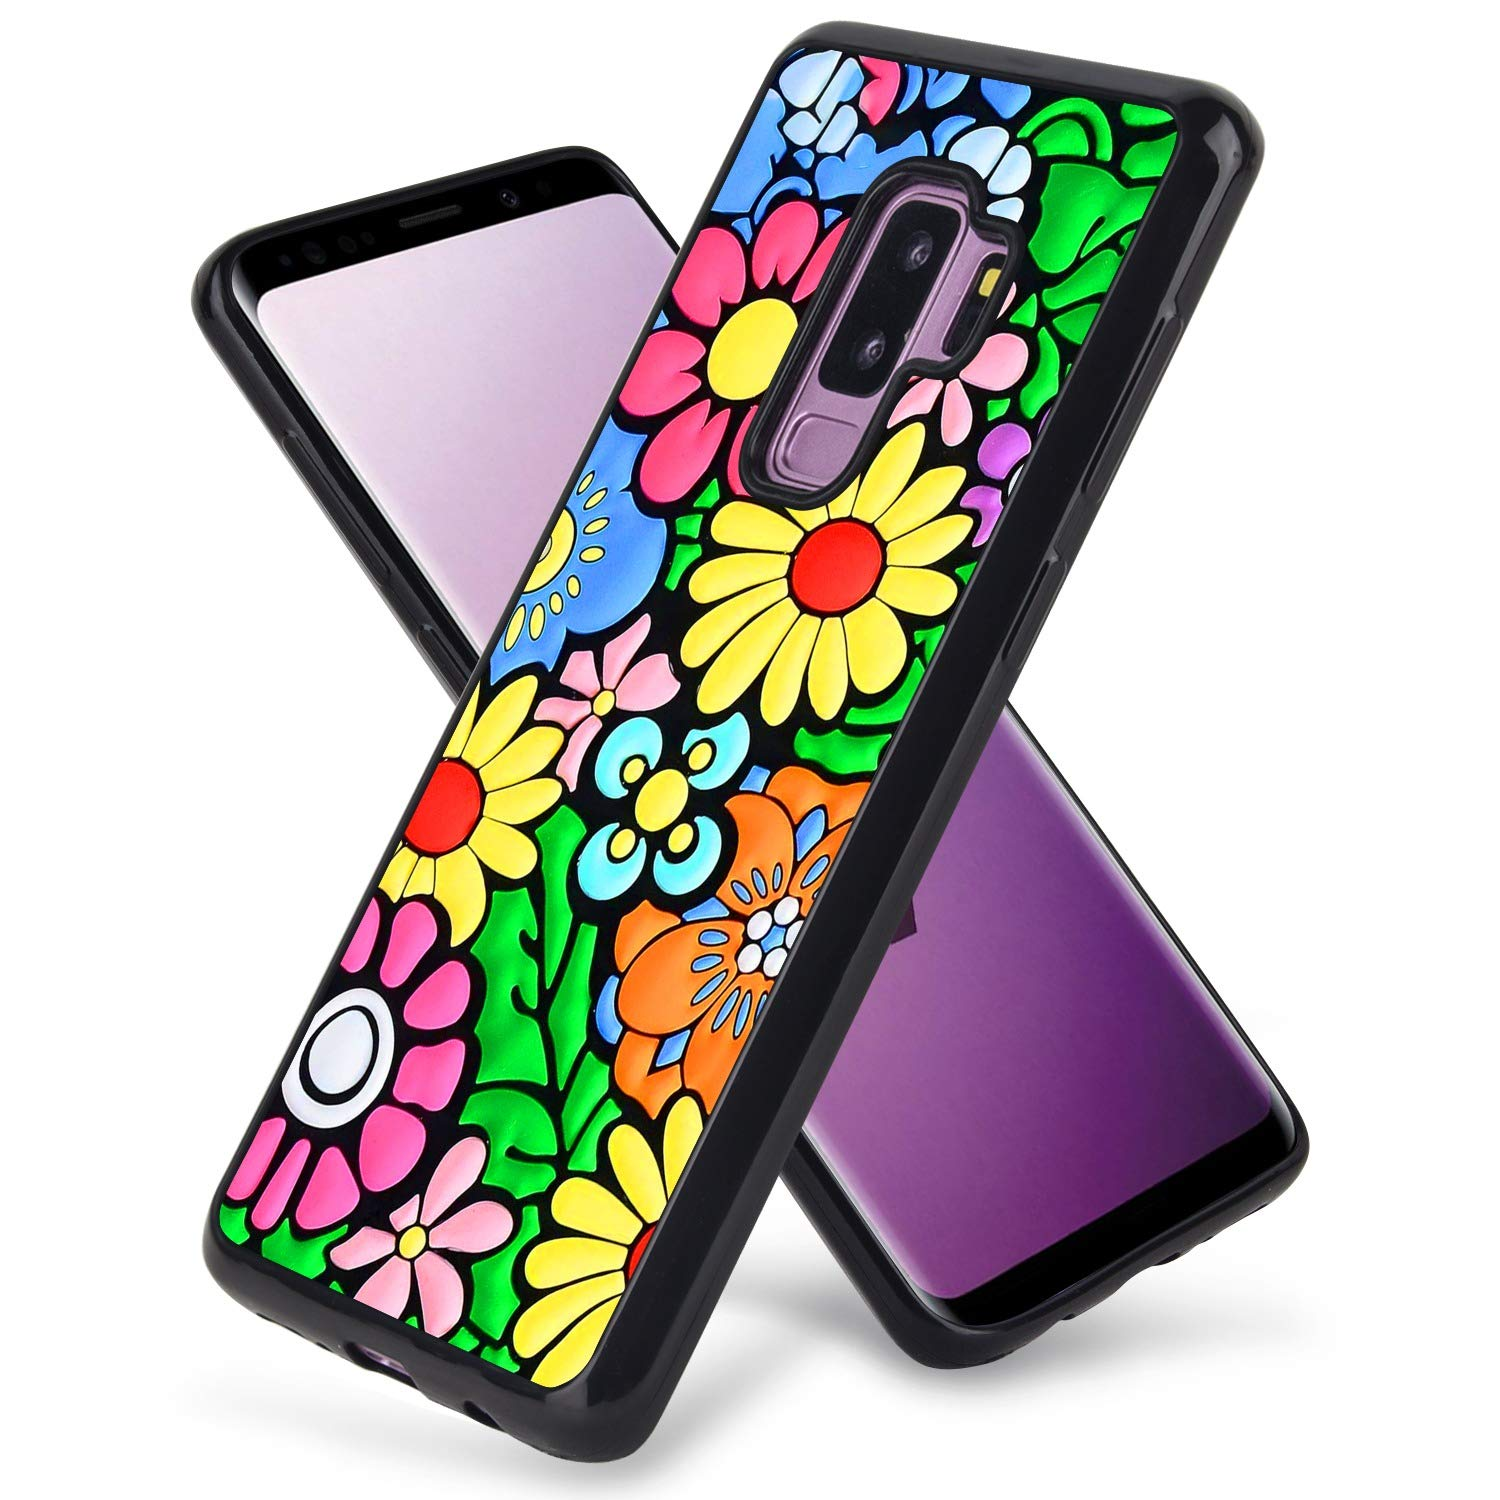 Samsung Galaxy S9 Plus Colorful Flowers Design Phone Iphone 1143145 Hd Wallpaper Backgrounds Download